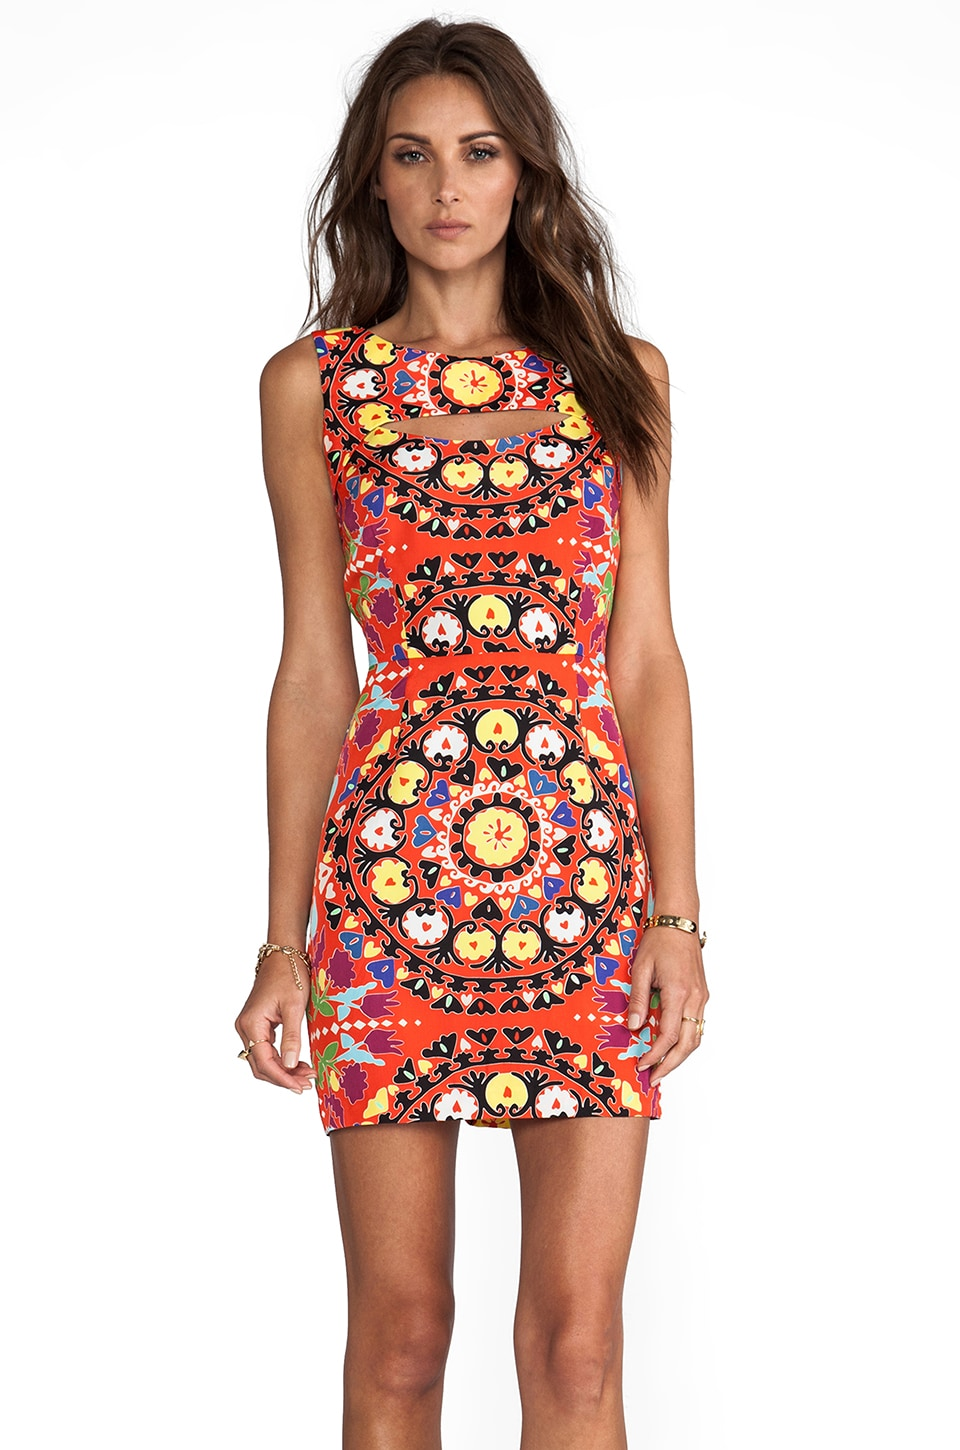 Mara Hoffman Cutout Mini Dress in Suzani Poppy